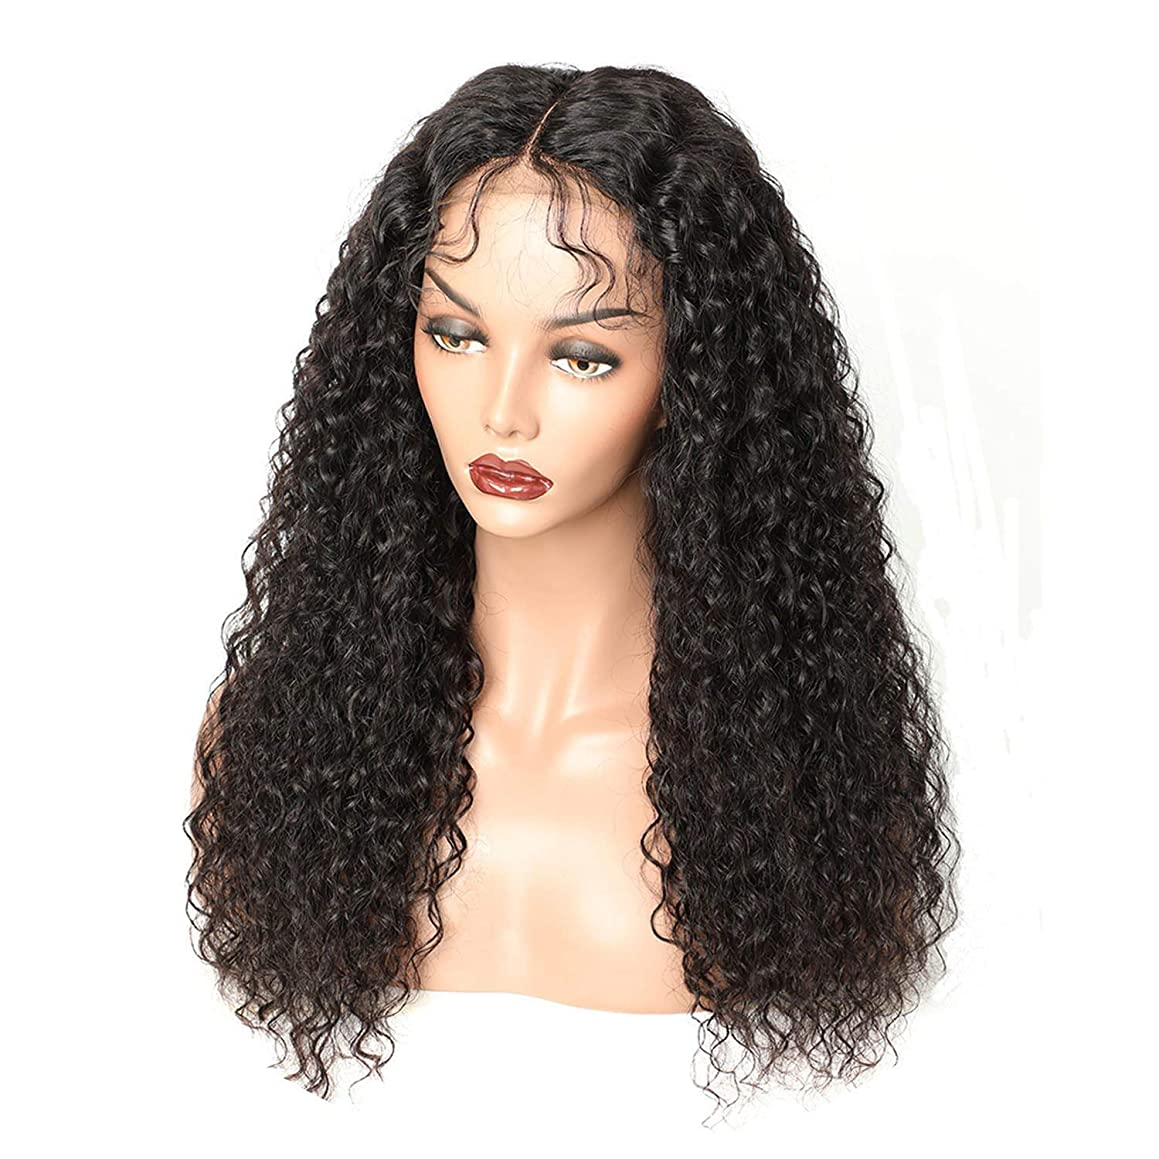 Curly Lace Front Wig With Baby Hair Brazilian Lace Front Human Hair Wigs For Black Women Remy Hair Lace Wig 150% Density,Natural Color,18inches,150%